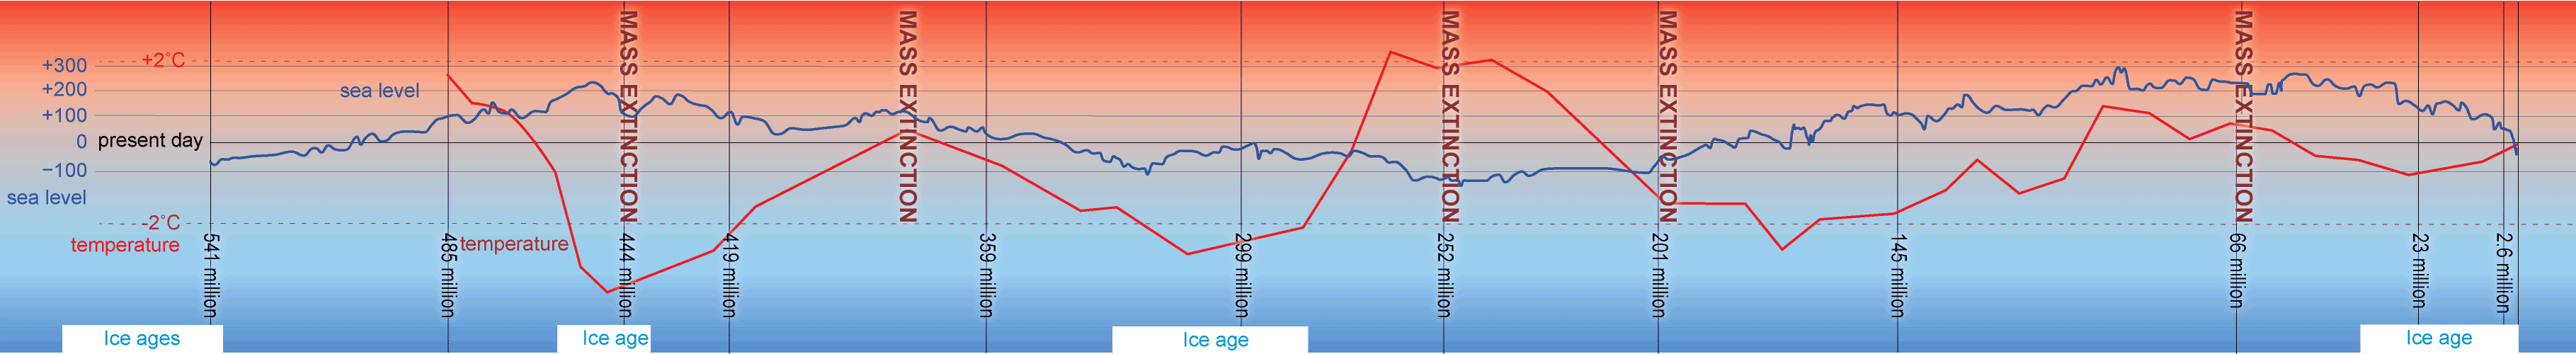 Temperature and sea level timeline